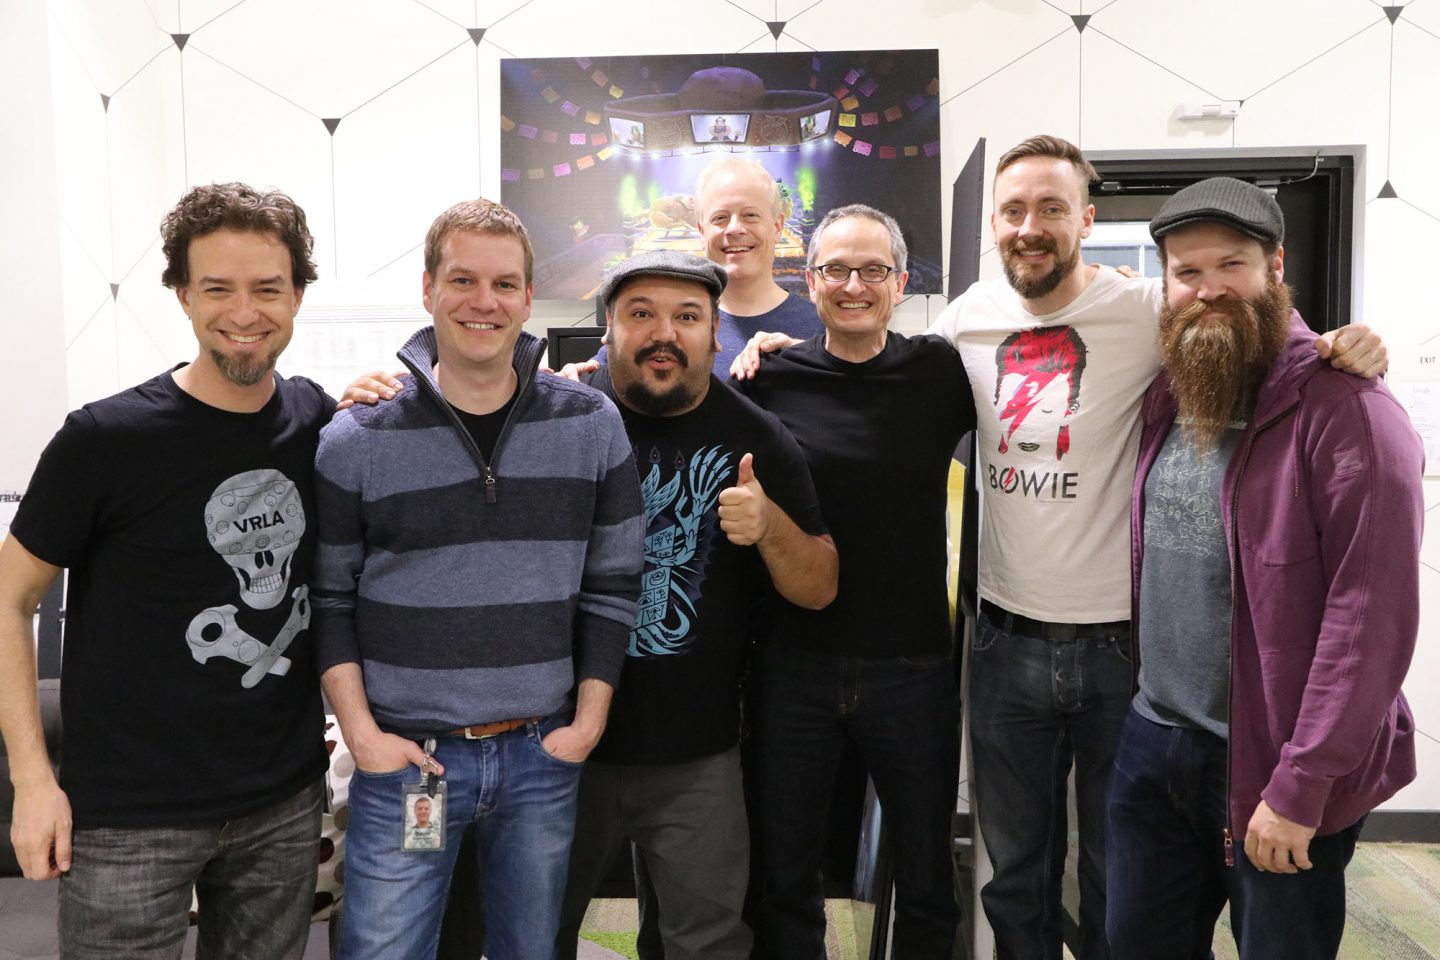 L to R: Cassidy Curtis, technical art lead, Google Spotlight Stories; David Eisenmann, producer; Jorge Gutierrez; Kirk Bodyfelt, producer, Reel FX; Jan Pinkava, creative director, Google Spotlight Stories; Paul Sullivan, production designer; John Anderholm technical supervisor, Reel FX.